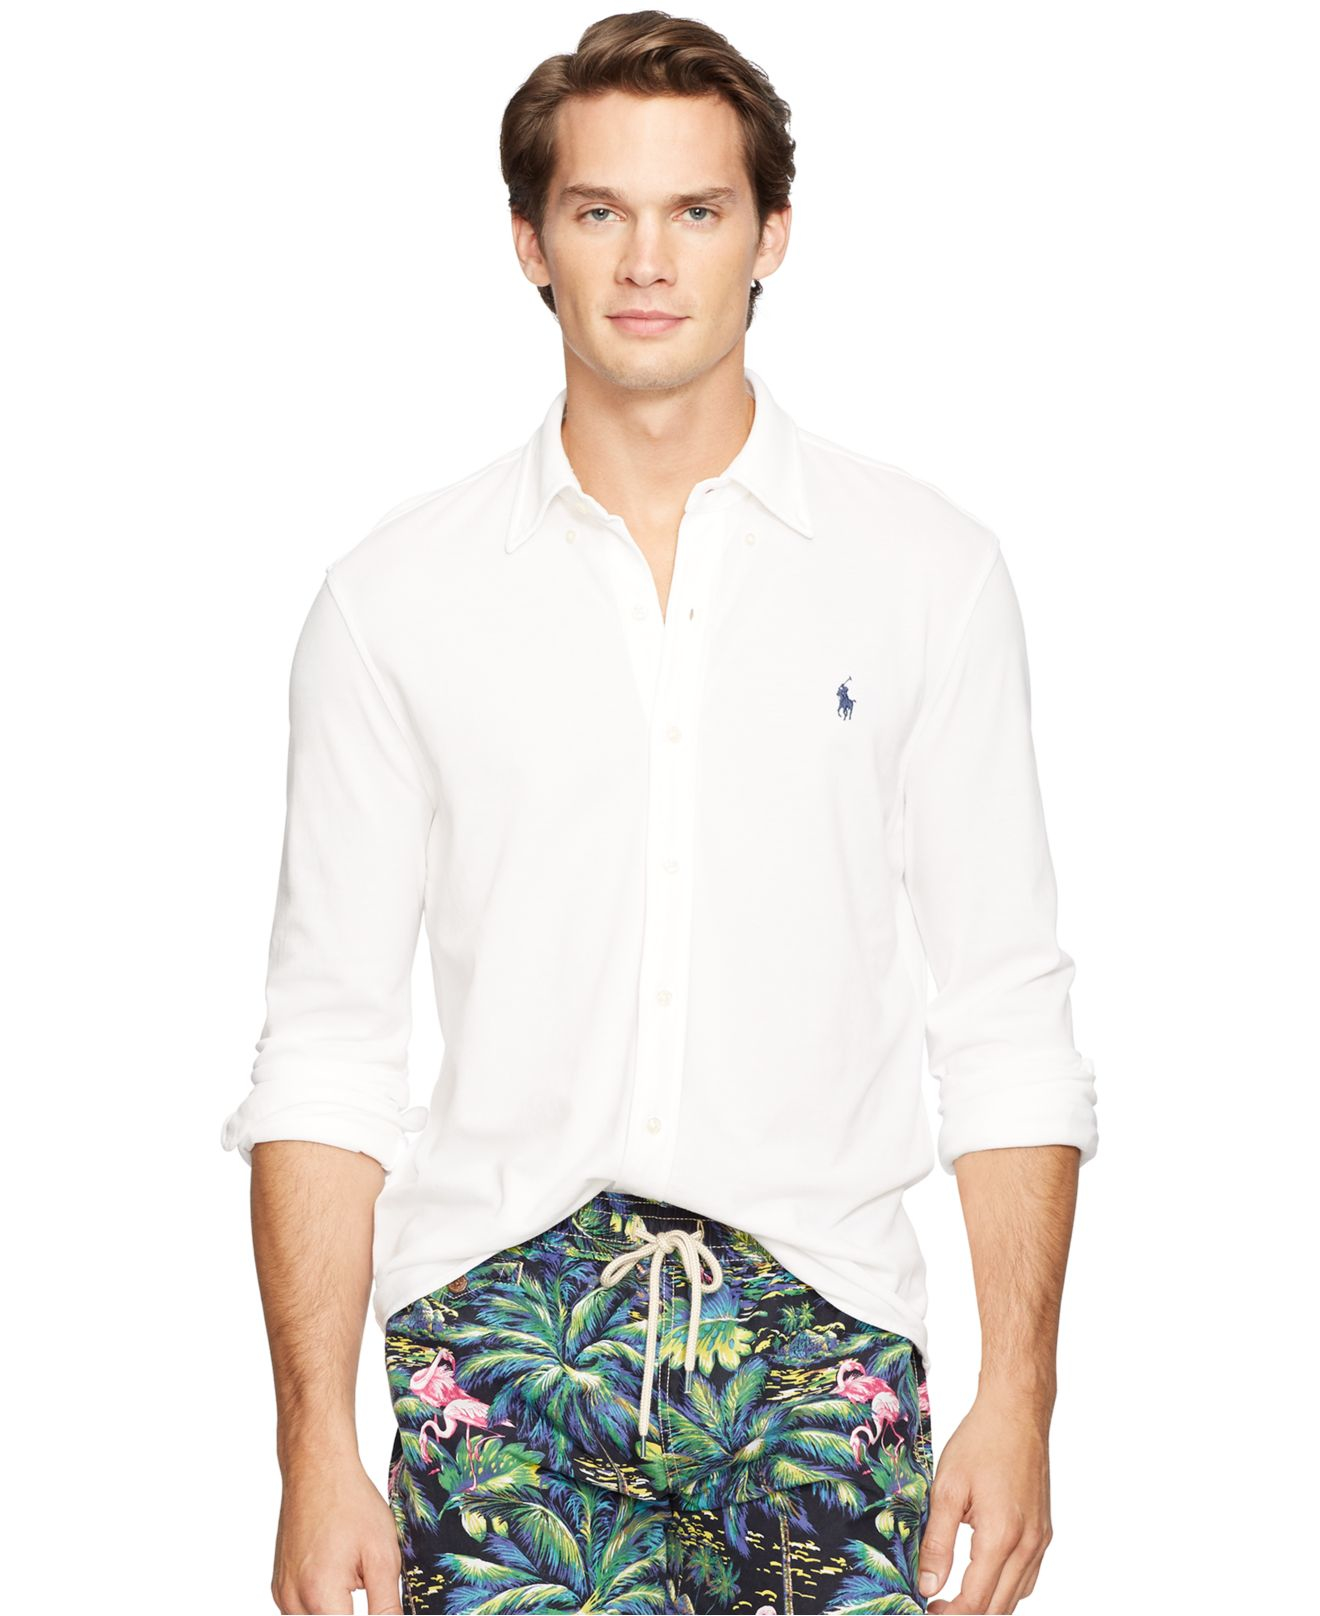 e967af995bf Lyst - Polo Ralph Lauren Featherweight Mesh Button-down Shirt in ...